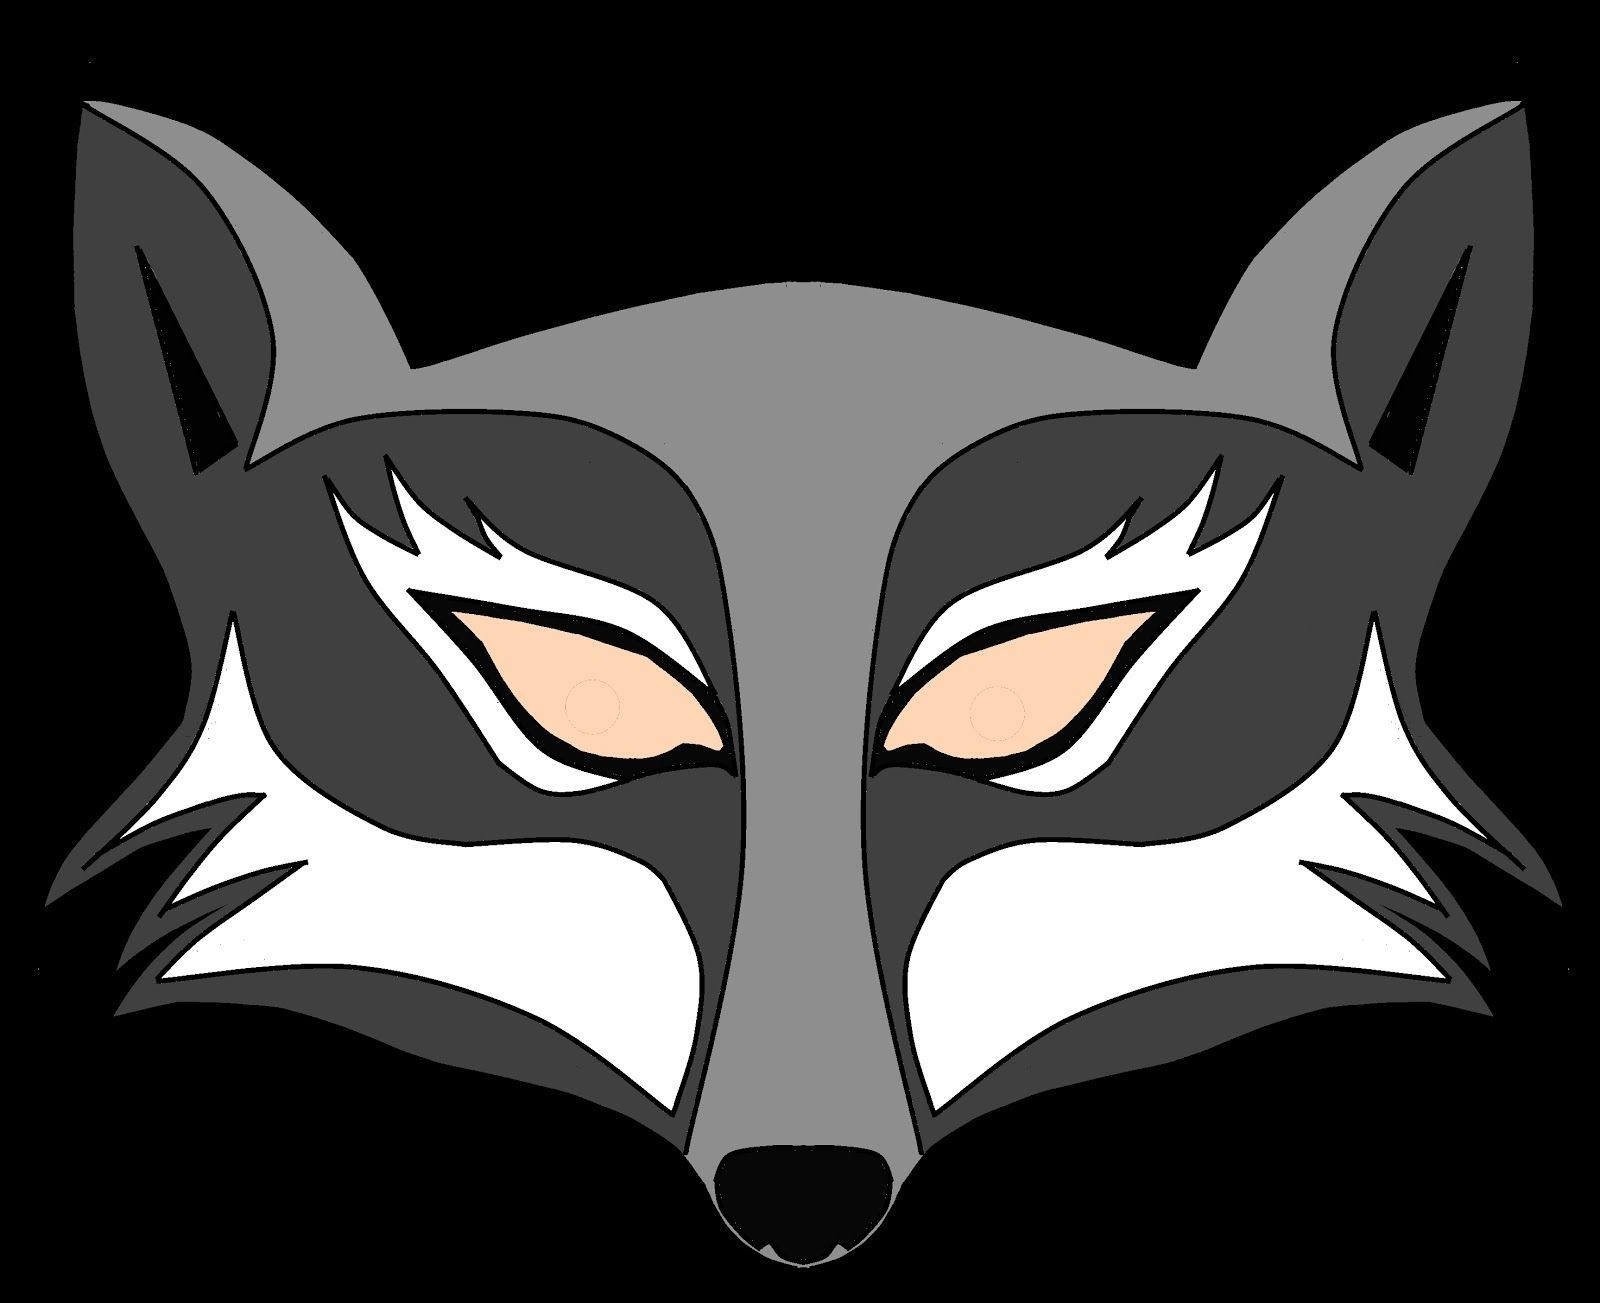 Wolf Mask Template Printable. Deer Head Clip Art At Clker Com Vector - Free Printable Wolf Mask